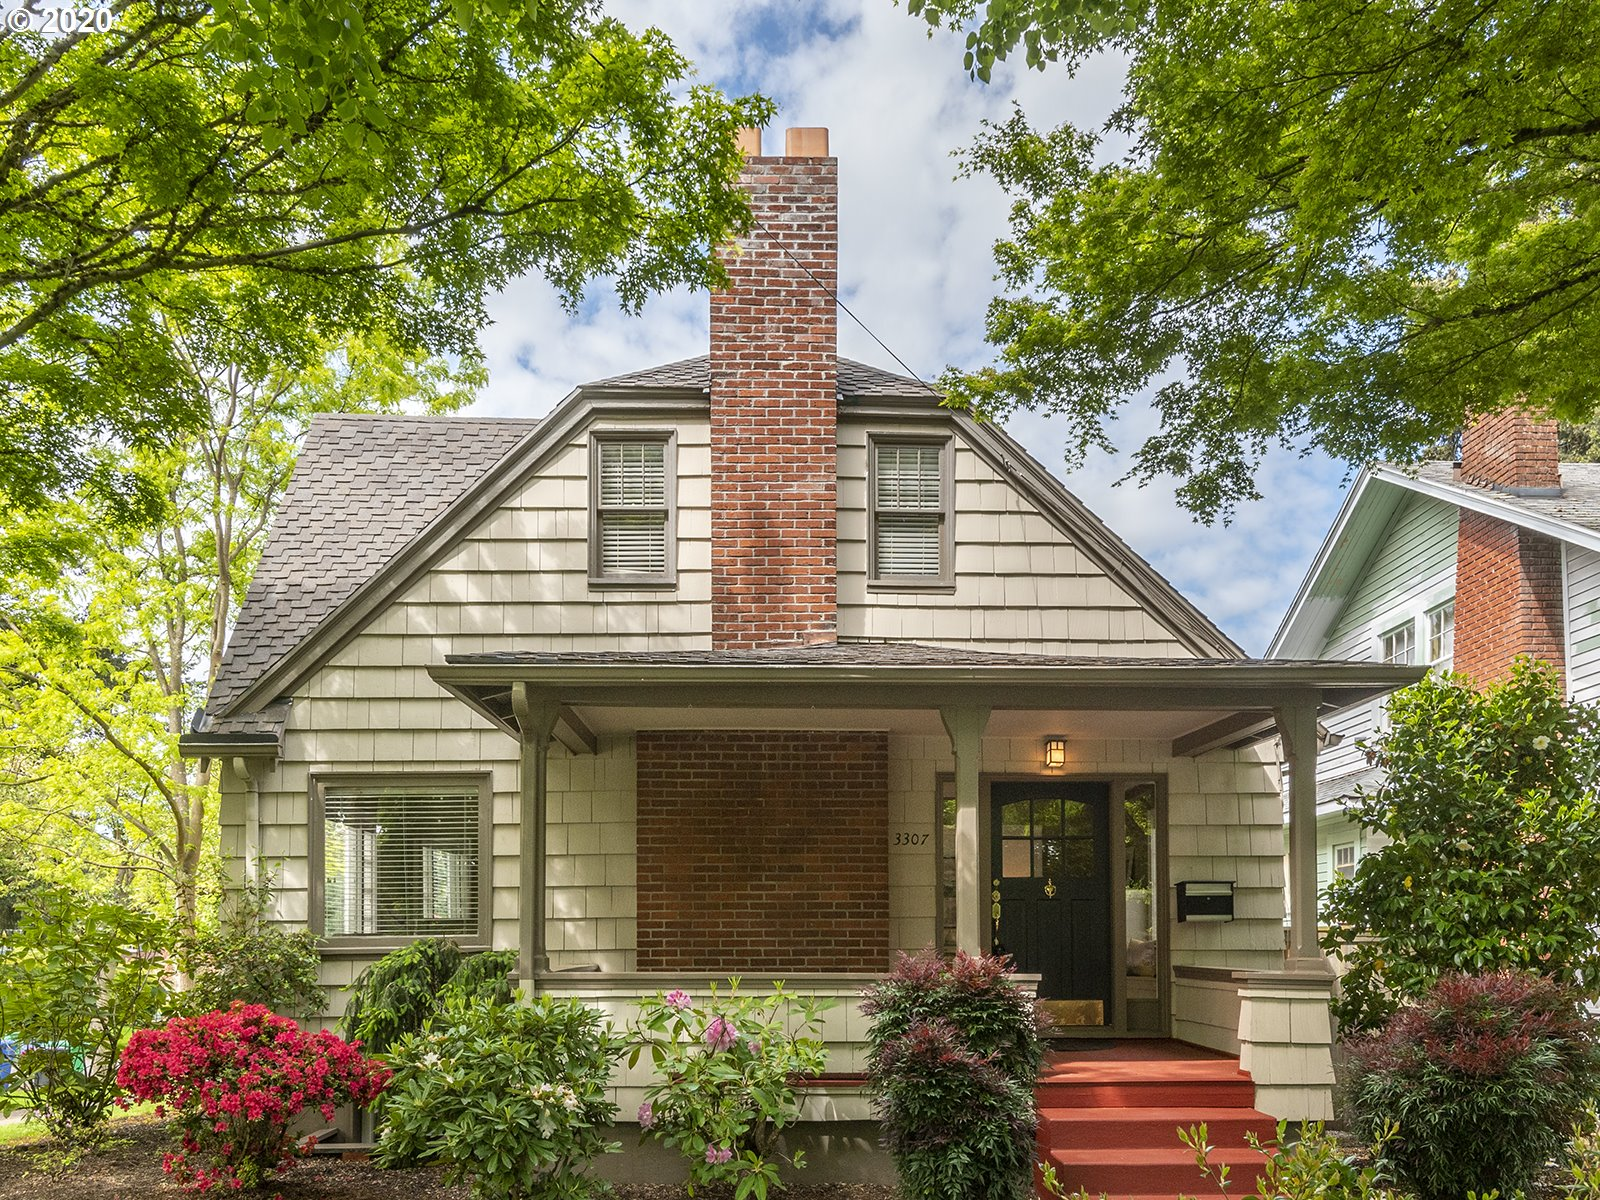 """CLASSY CRAFTSMAN BUNGALOW!IDEAL""""WORK FROM HOME SPACE on main or in finished bsmt.Spacious livrm with great blt-ins,frplc, pocket French doors and hdwds. Formal dinrm w/wainscoting.Generous main flr bdrm + office off LR.Updated kitchen w/granite ctrs,new SS appliances & nook.Extensive top floor vaulted master with blt-ins, beams, walk-in closet and full bath.Bonus up for nursery/office or add'l closet space. Fin. bsmt w/2 bdrms,large famrm, bath & utility. ADU POTENTIAL.Open House 09/13 12-2pm."""